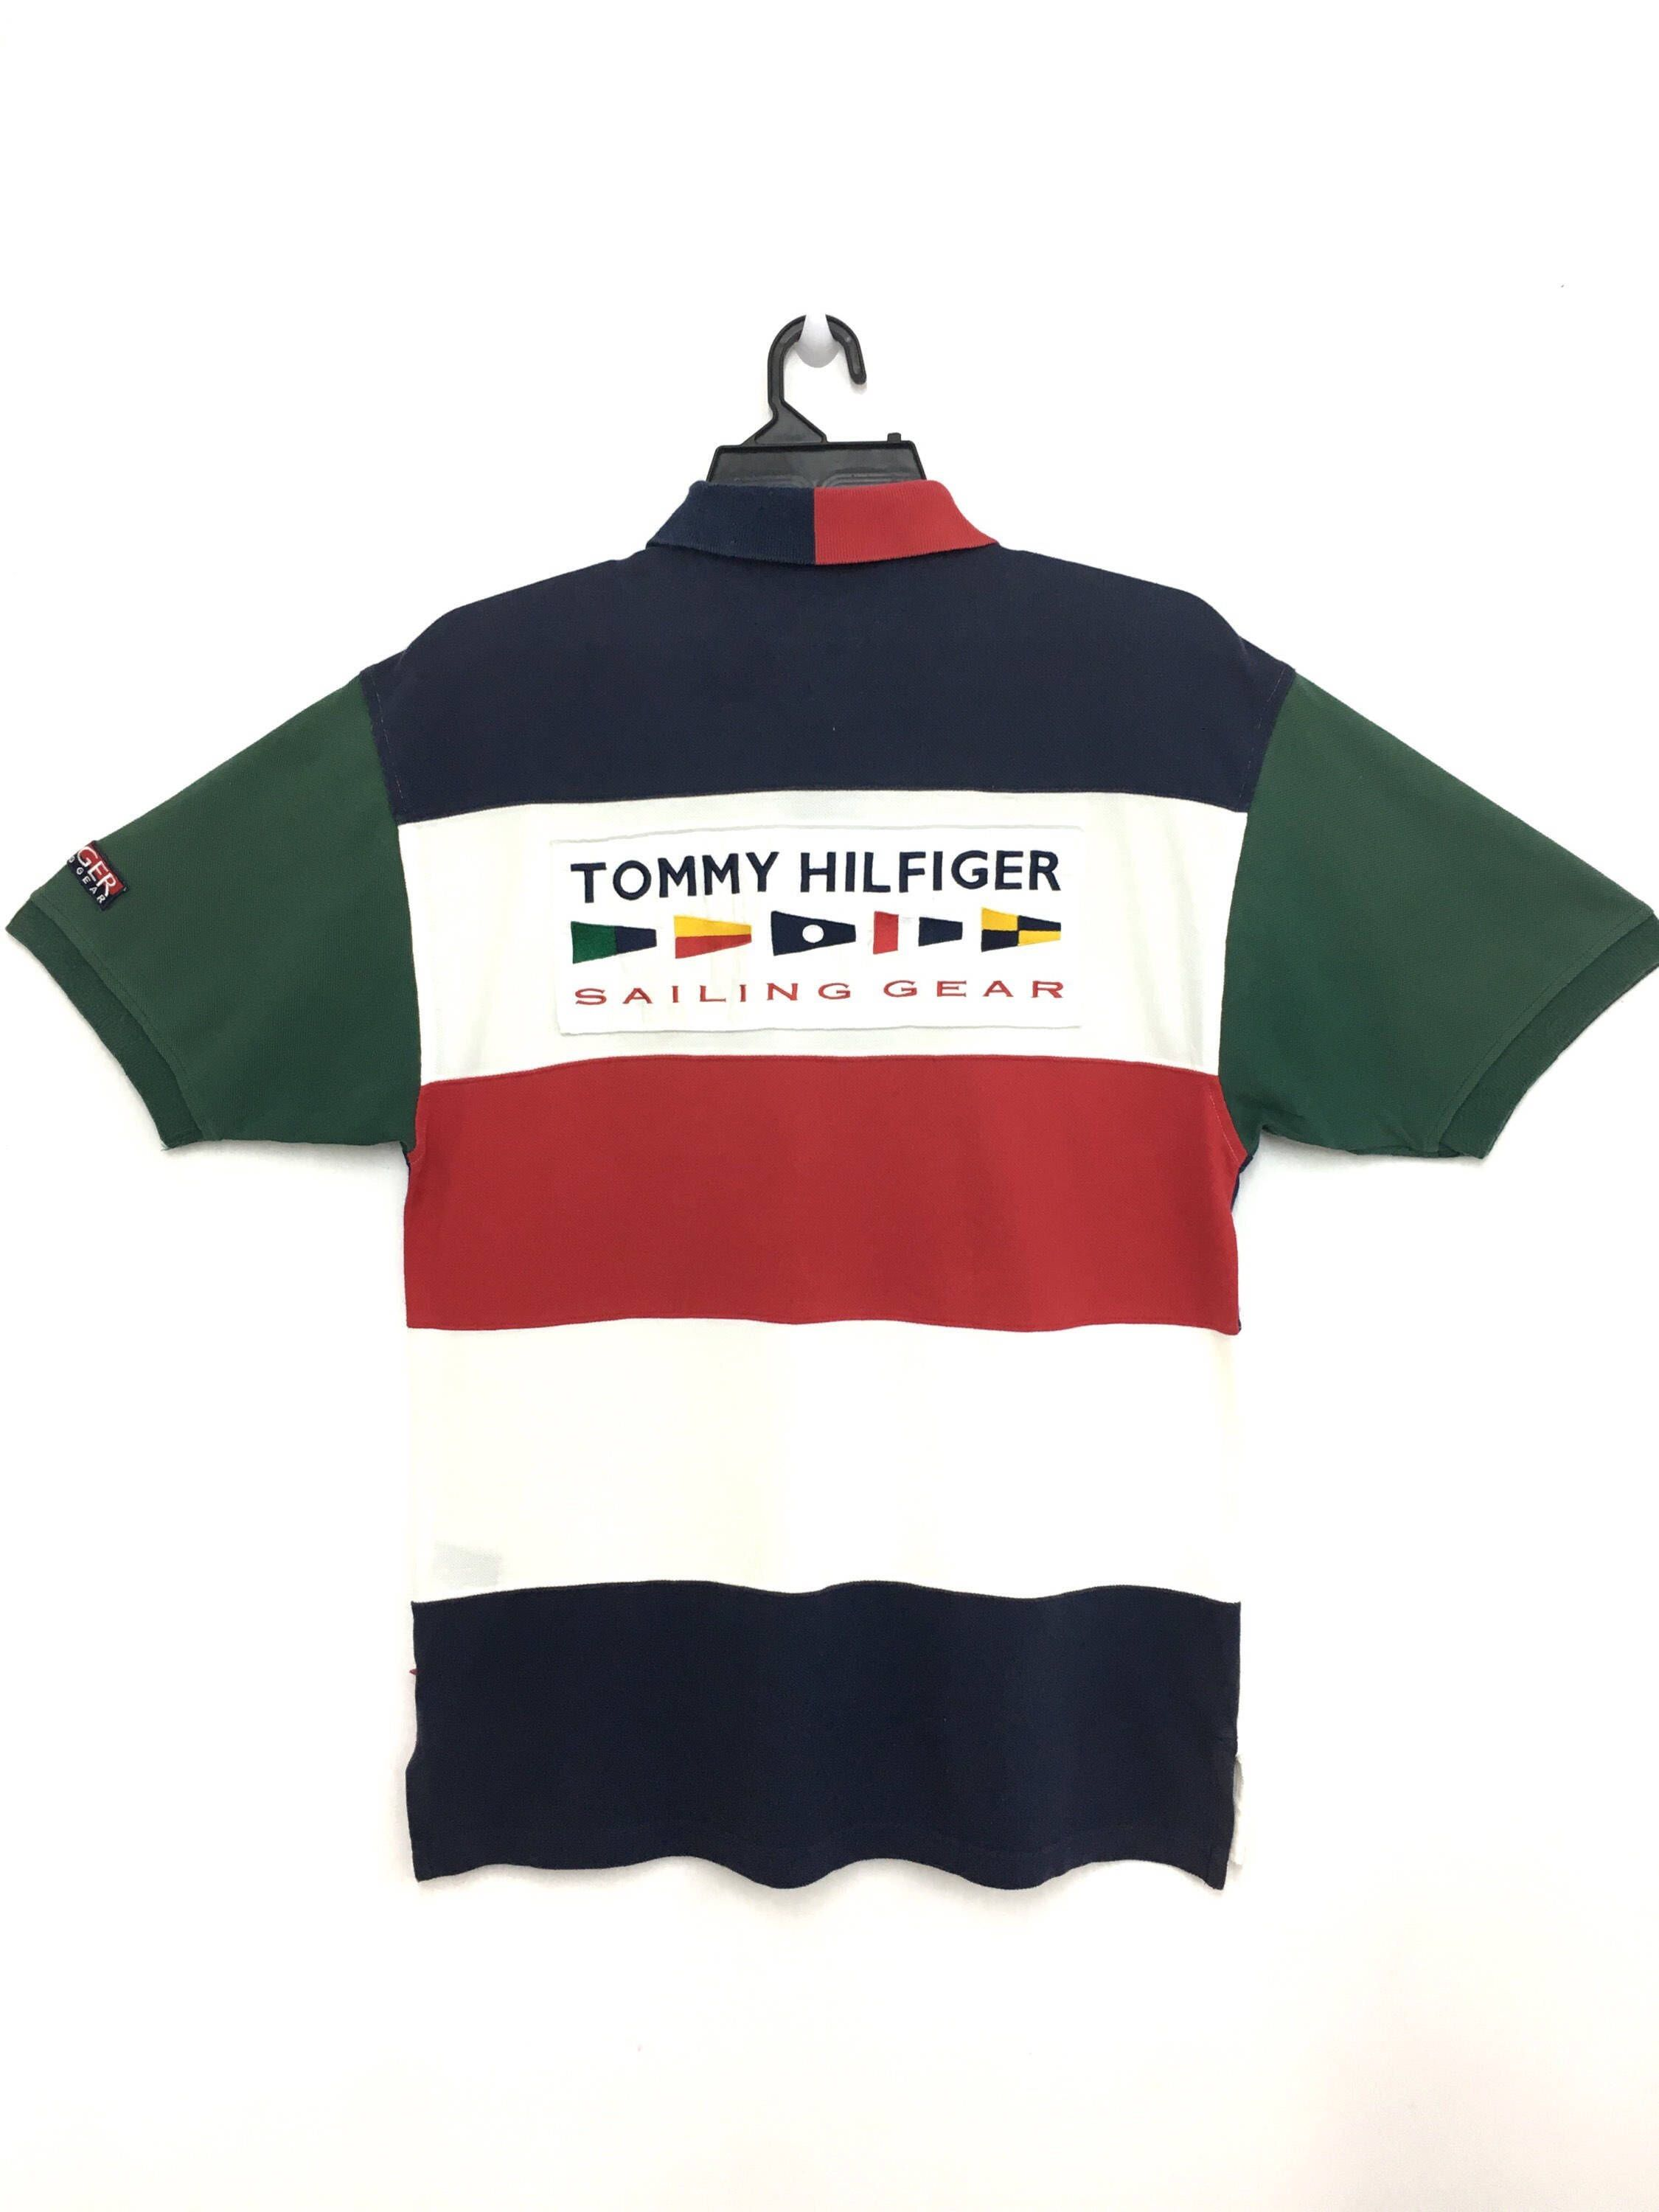 a73aa875ed2 Excited to share this item from my  etsy shop  Rare!! Vintage TOMMY  HILFIGER Sailing Gear Polo Shirt Block Color Large Size on tag